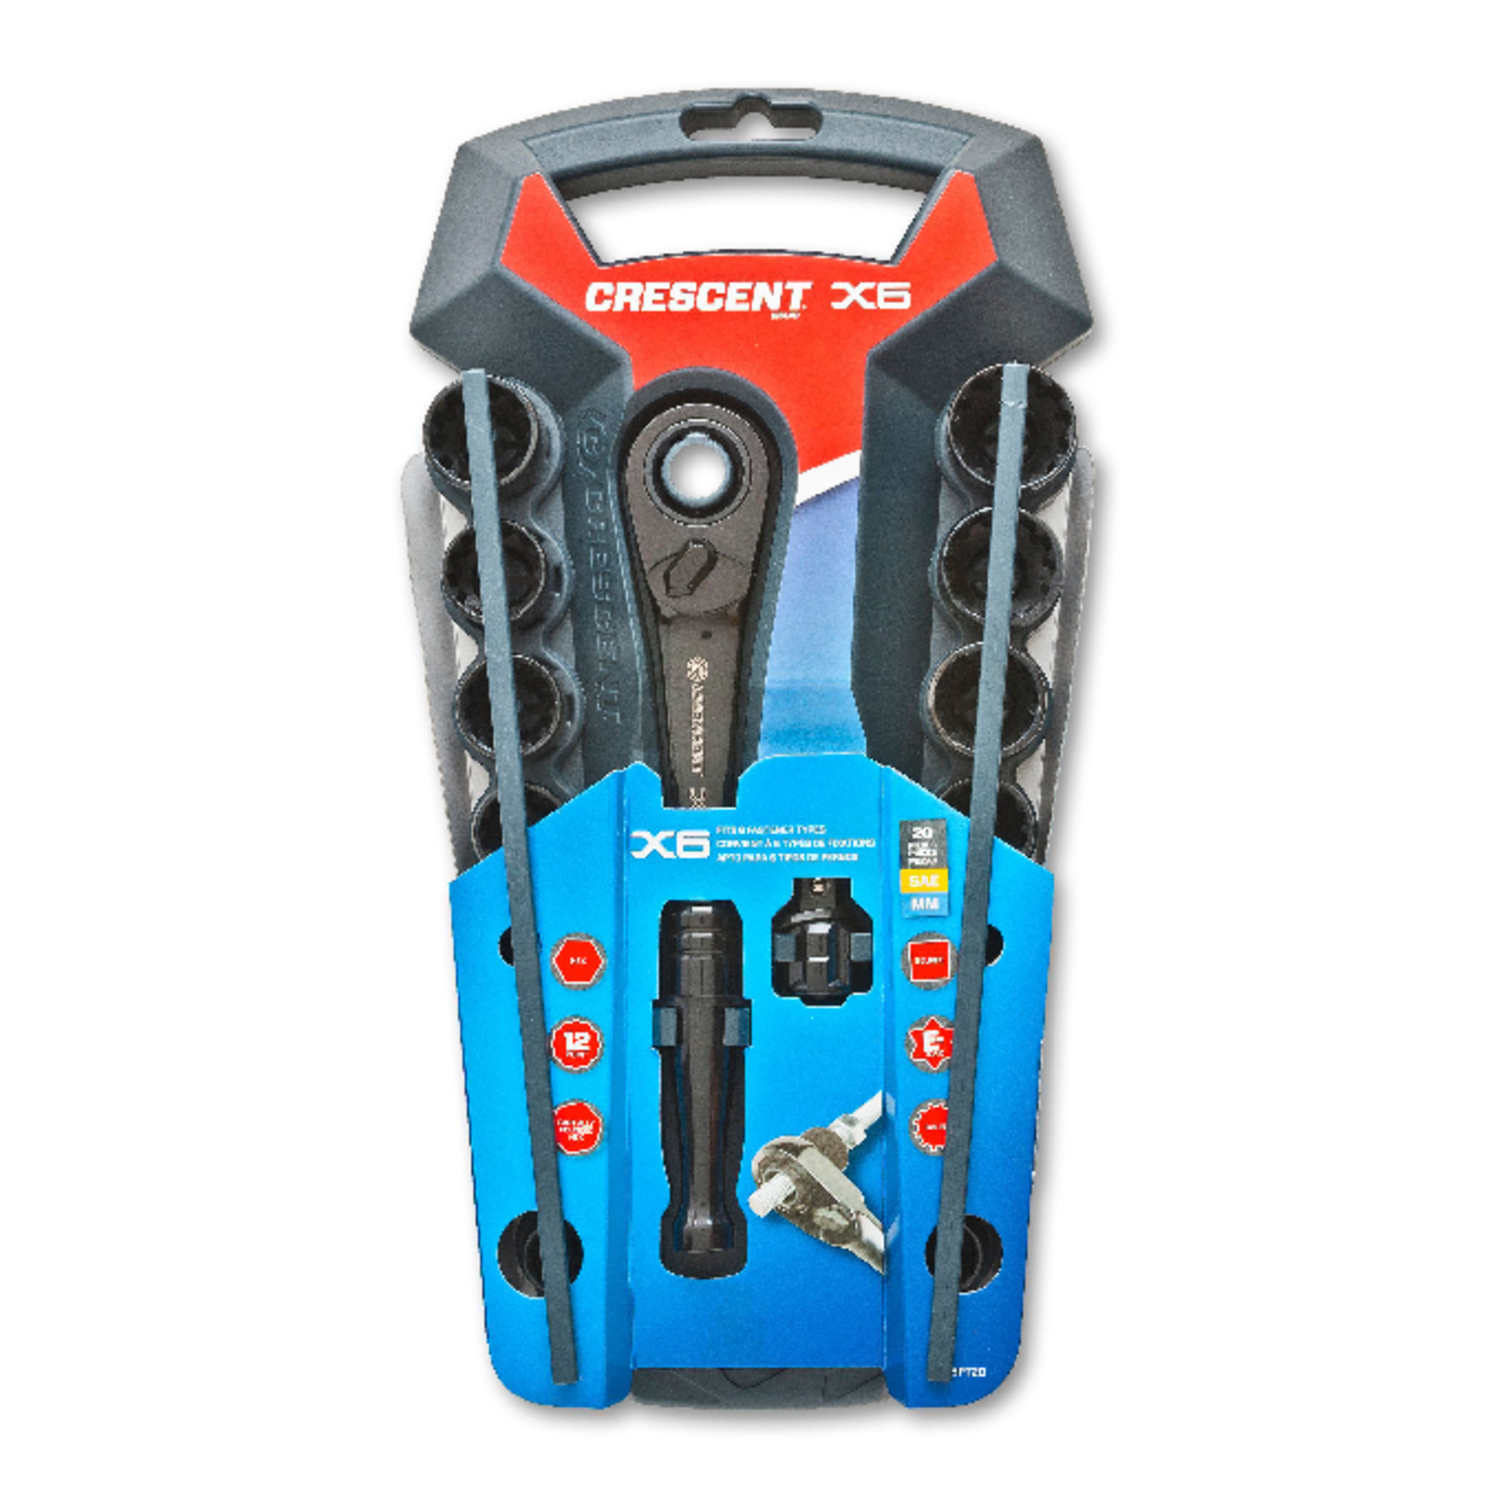 Crescent  X6  Assorted Sizes  x 1/2 in.  Metric and SAE  6 and 12  Socket Wrench Set  20 pc.